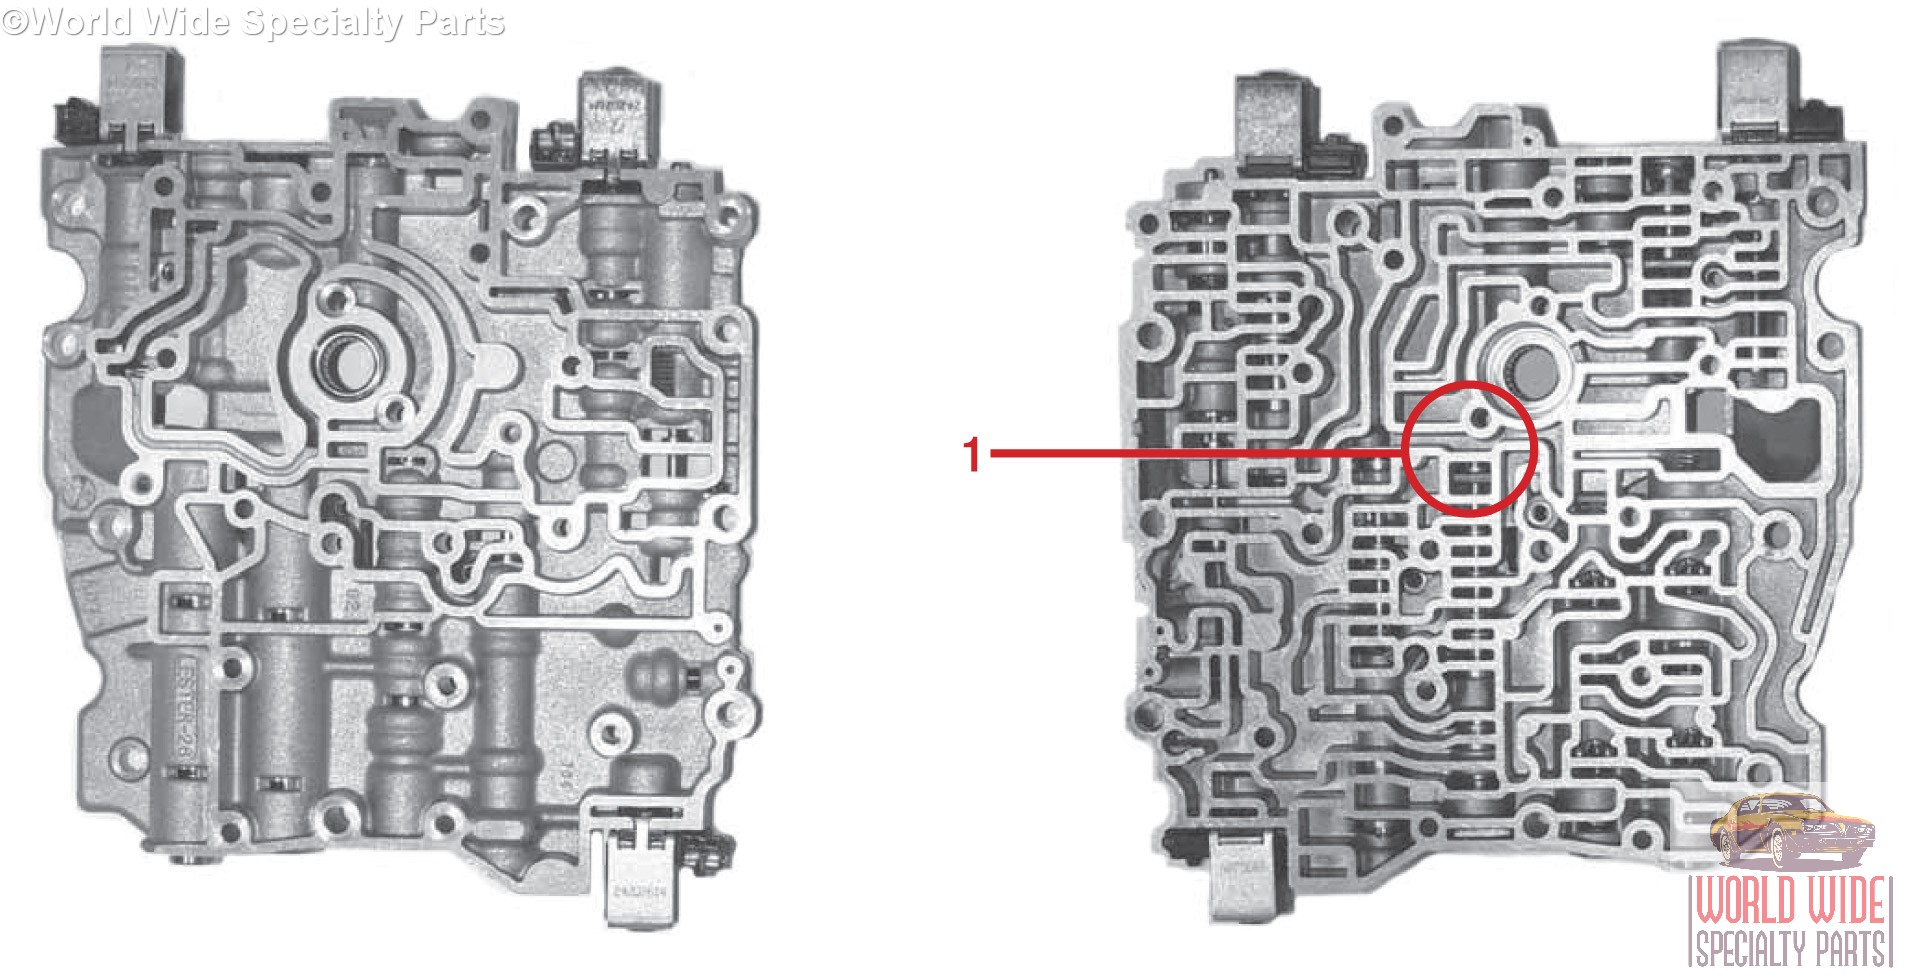 Gm 4t60e Transmission Diagram Schematic Diagrams Saab Valve Body Block And U2022 Exploded View